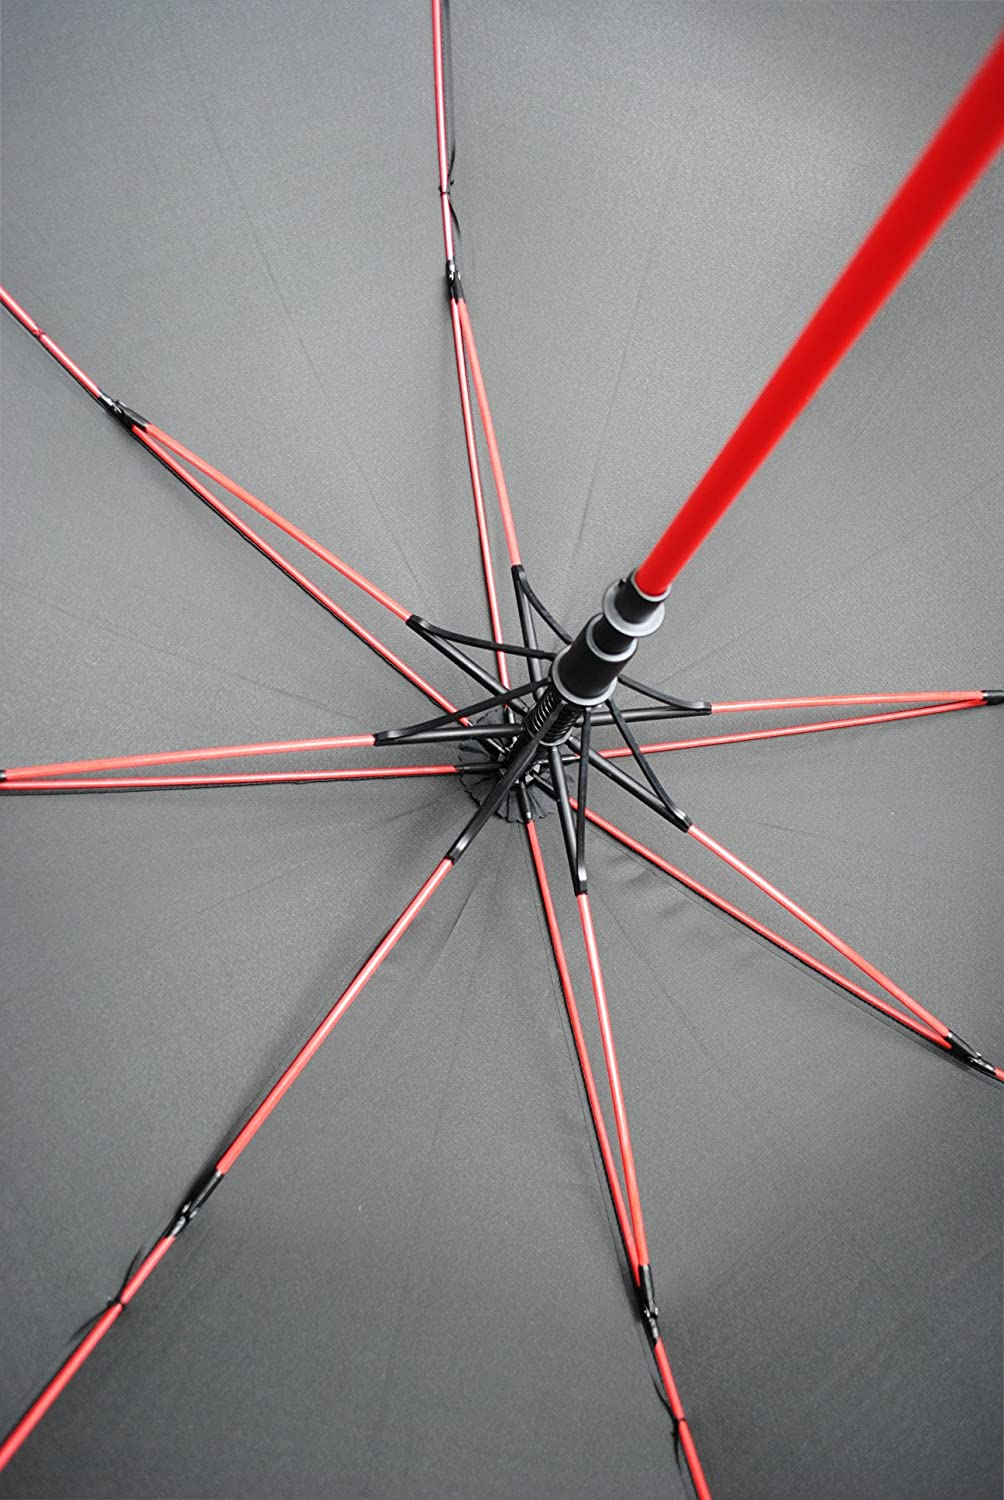 Amazon.com: COLLAR AND CUFFS LONDON - 60MPH Windproof EXTRA STRONG - StormFighter Jumbo Umbrella - Striking Red Reinforced Fiberglass Frame - For 1 or 2 ...